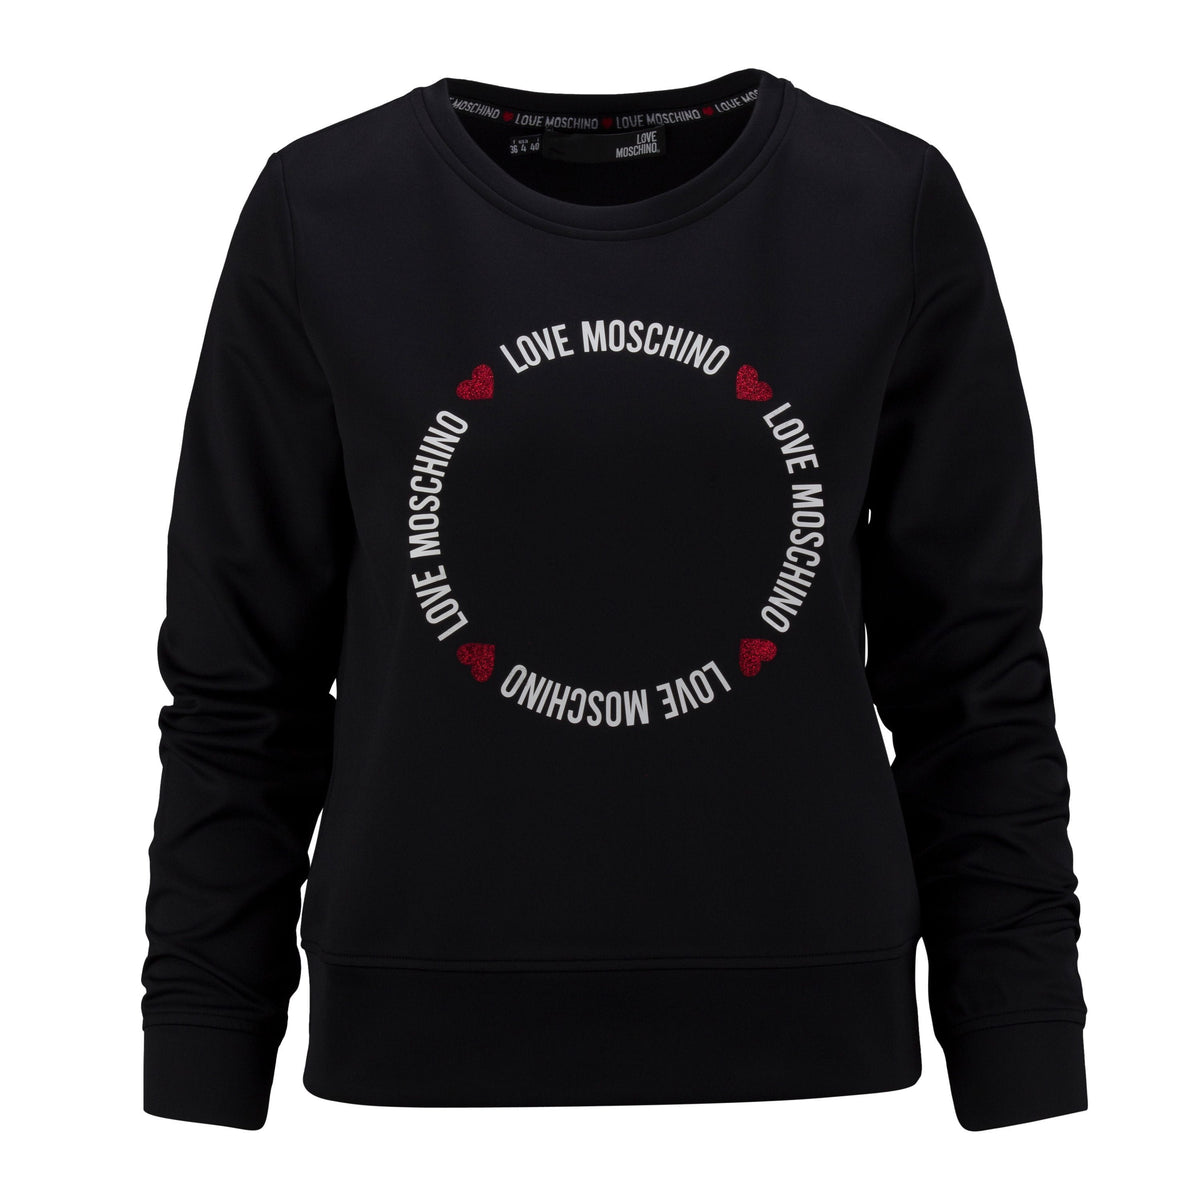 Love Moschino Ladies Round Lettering Interlock Sweatshirt